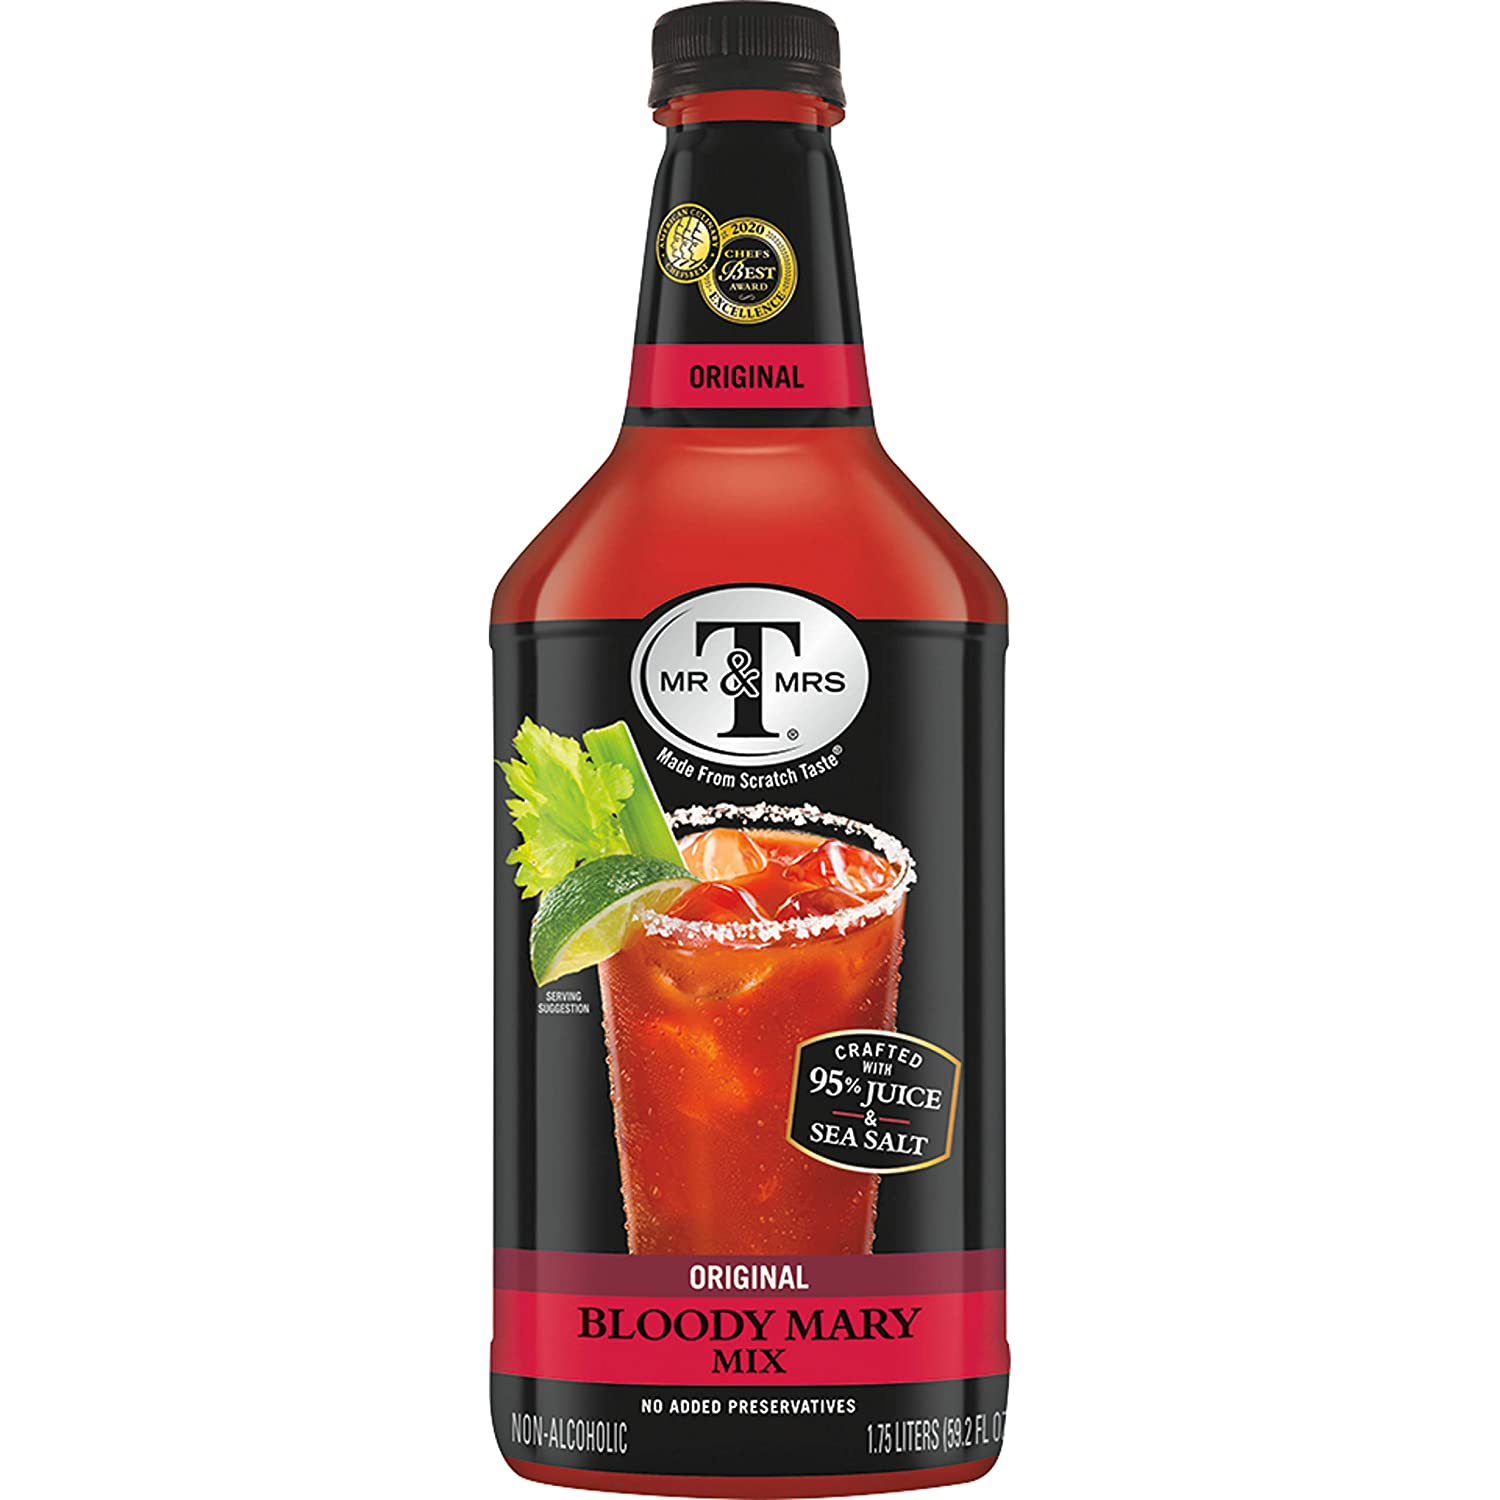 Mr & Mrs T Original Bloody Mary Mix, 1.75 L bottles (Pack of 6)